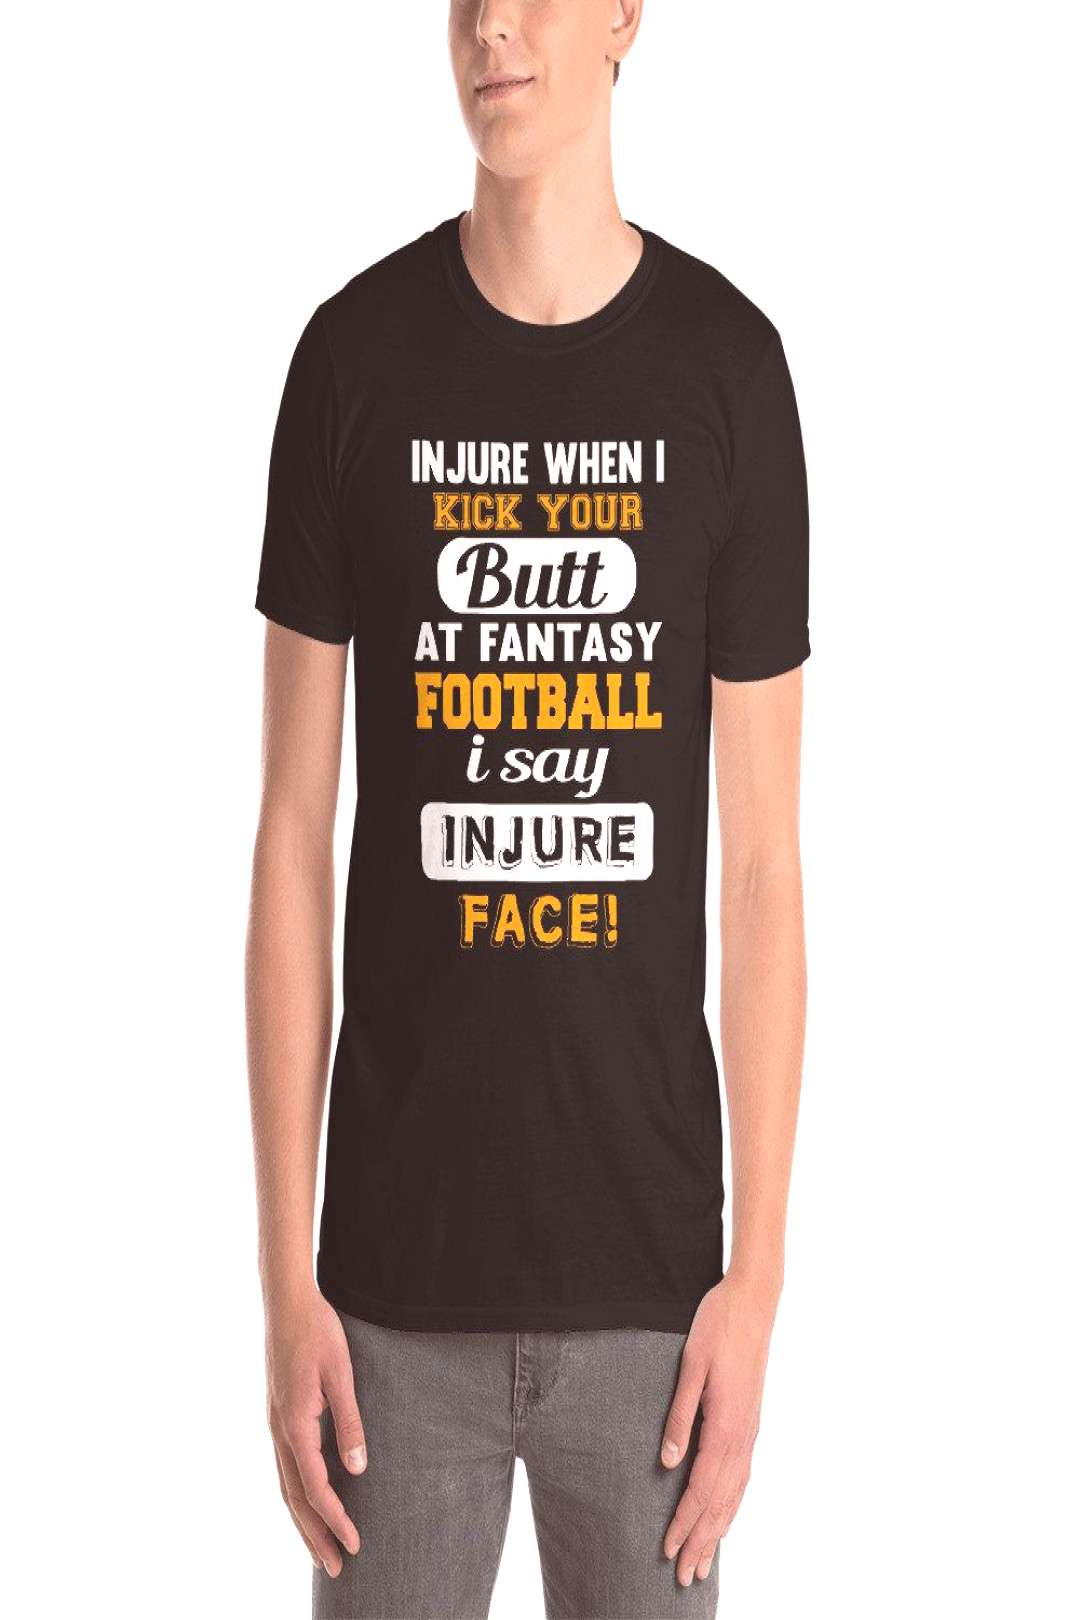 Funny Fantasy Football Quote Injure Face Short-Sleeve Unisex T-Shirt